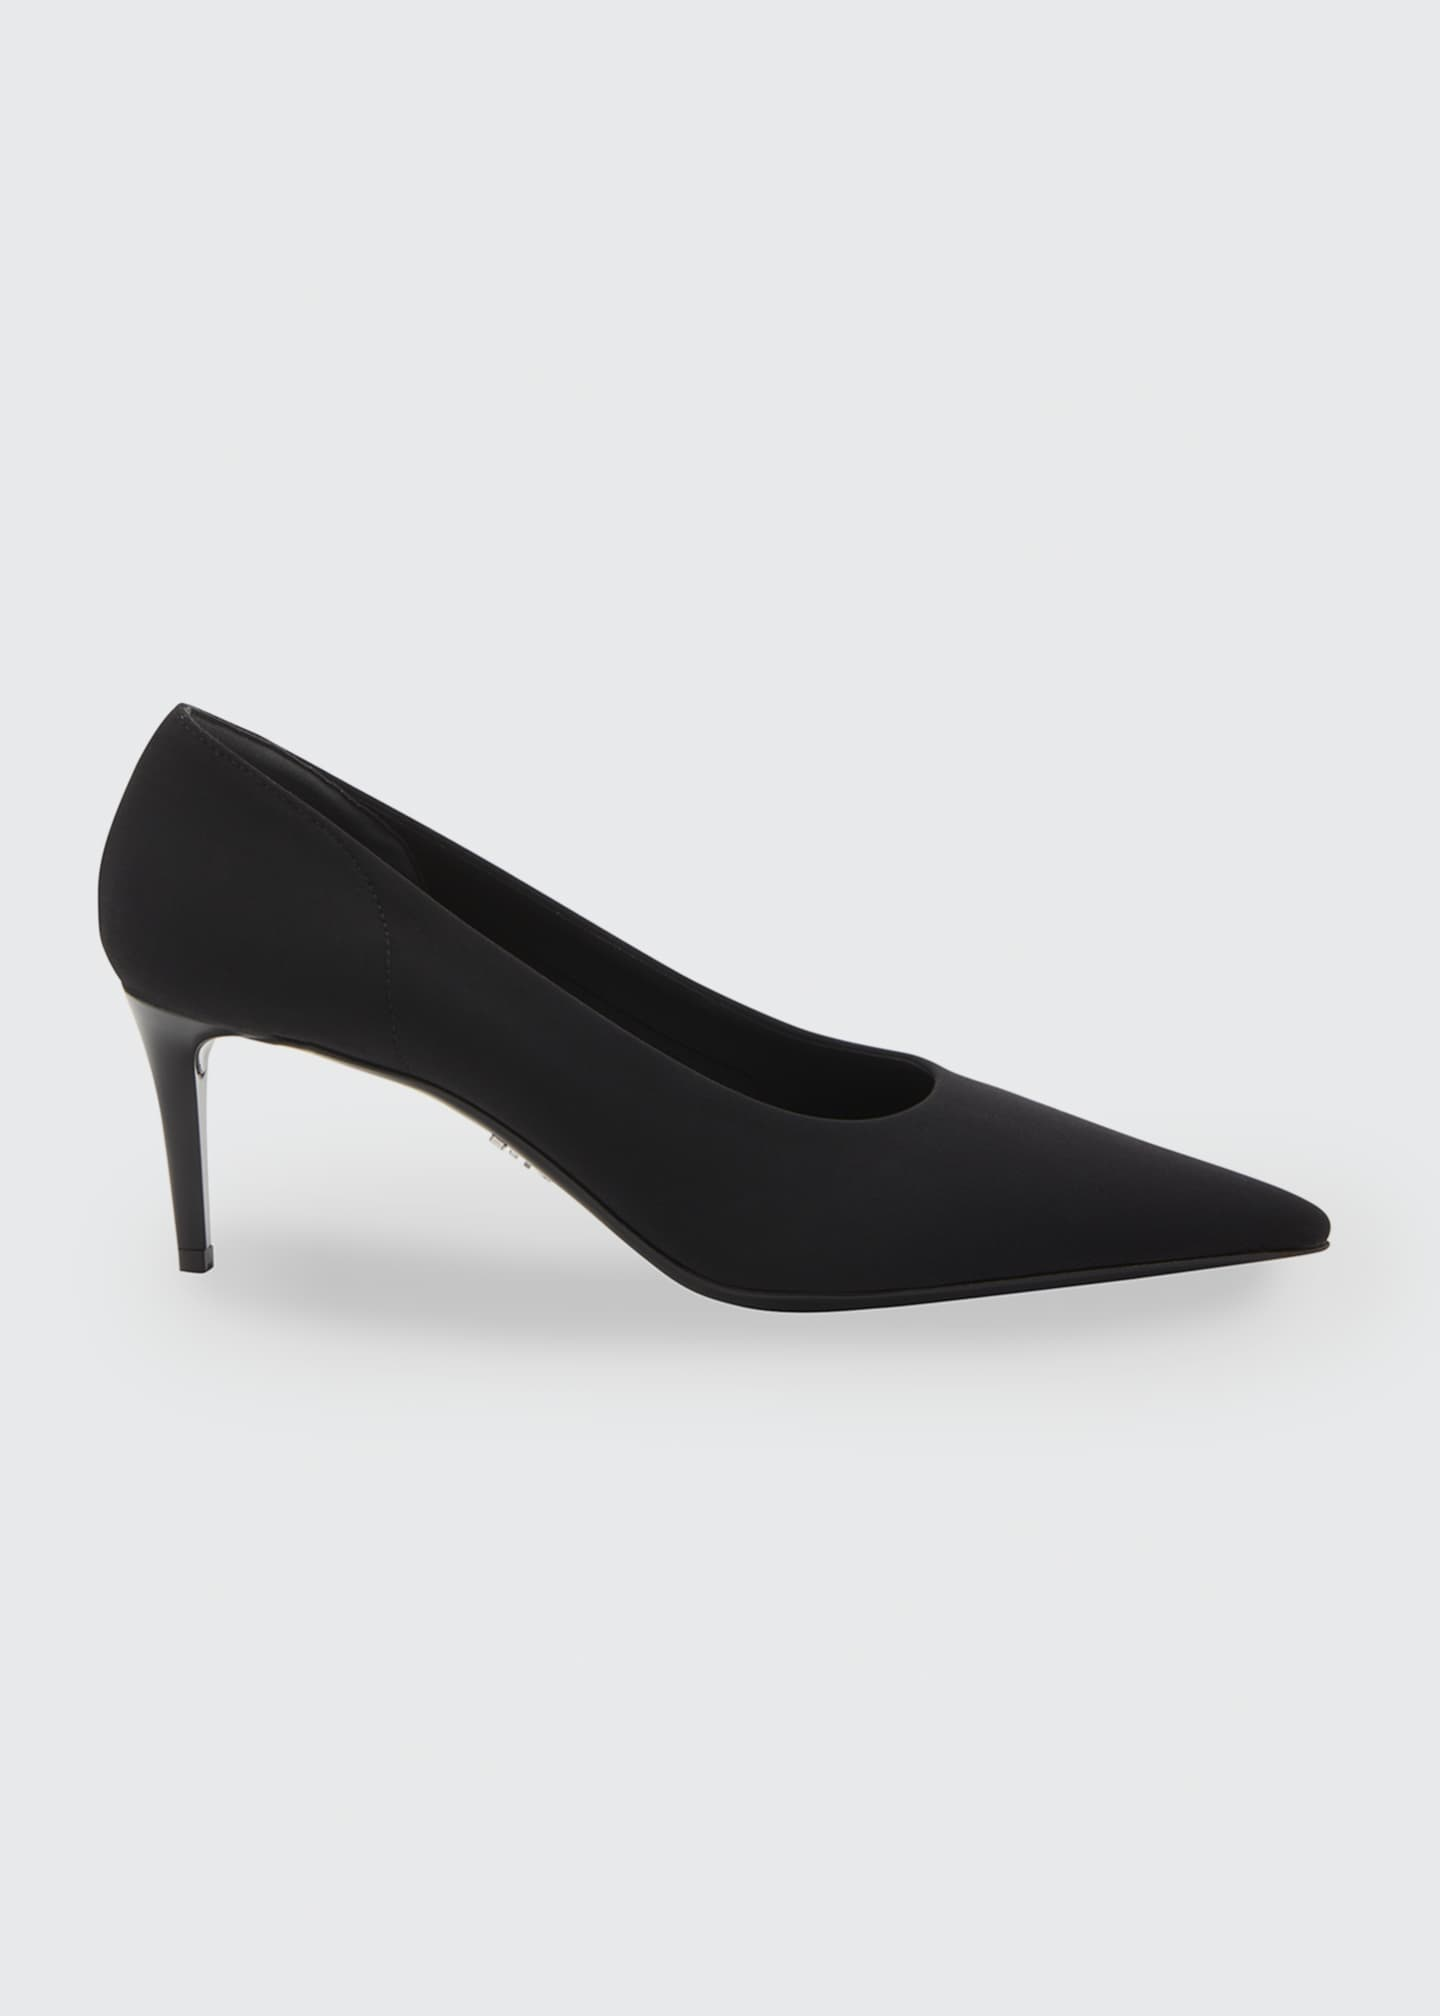 Prada Fabric Stretch 65mm Pumps